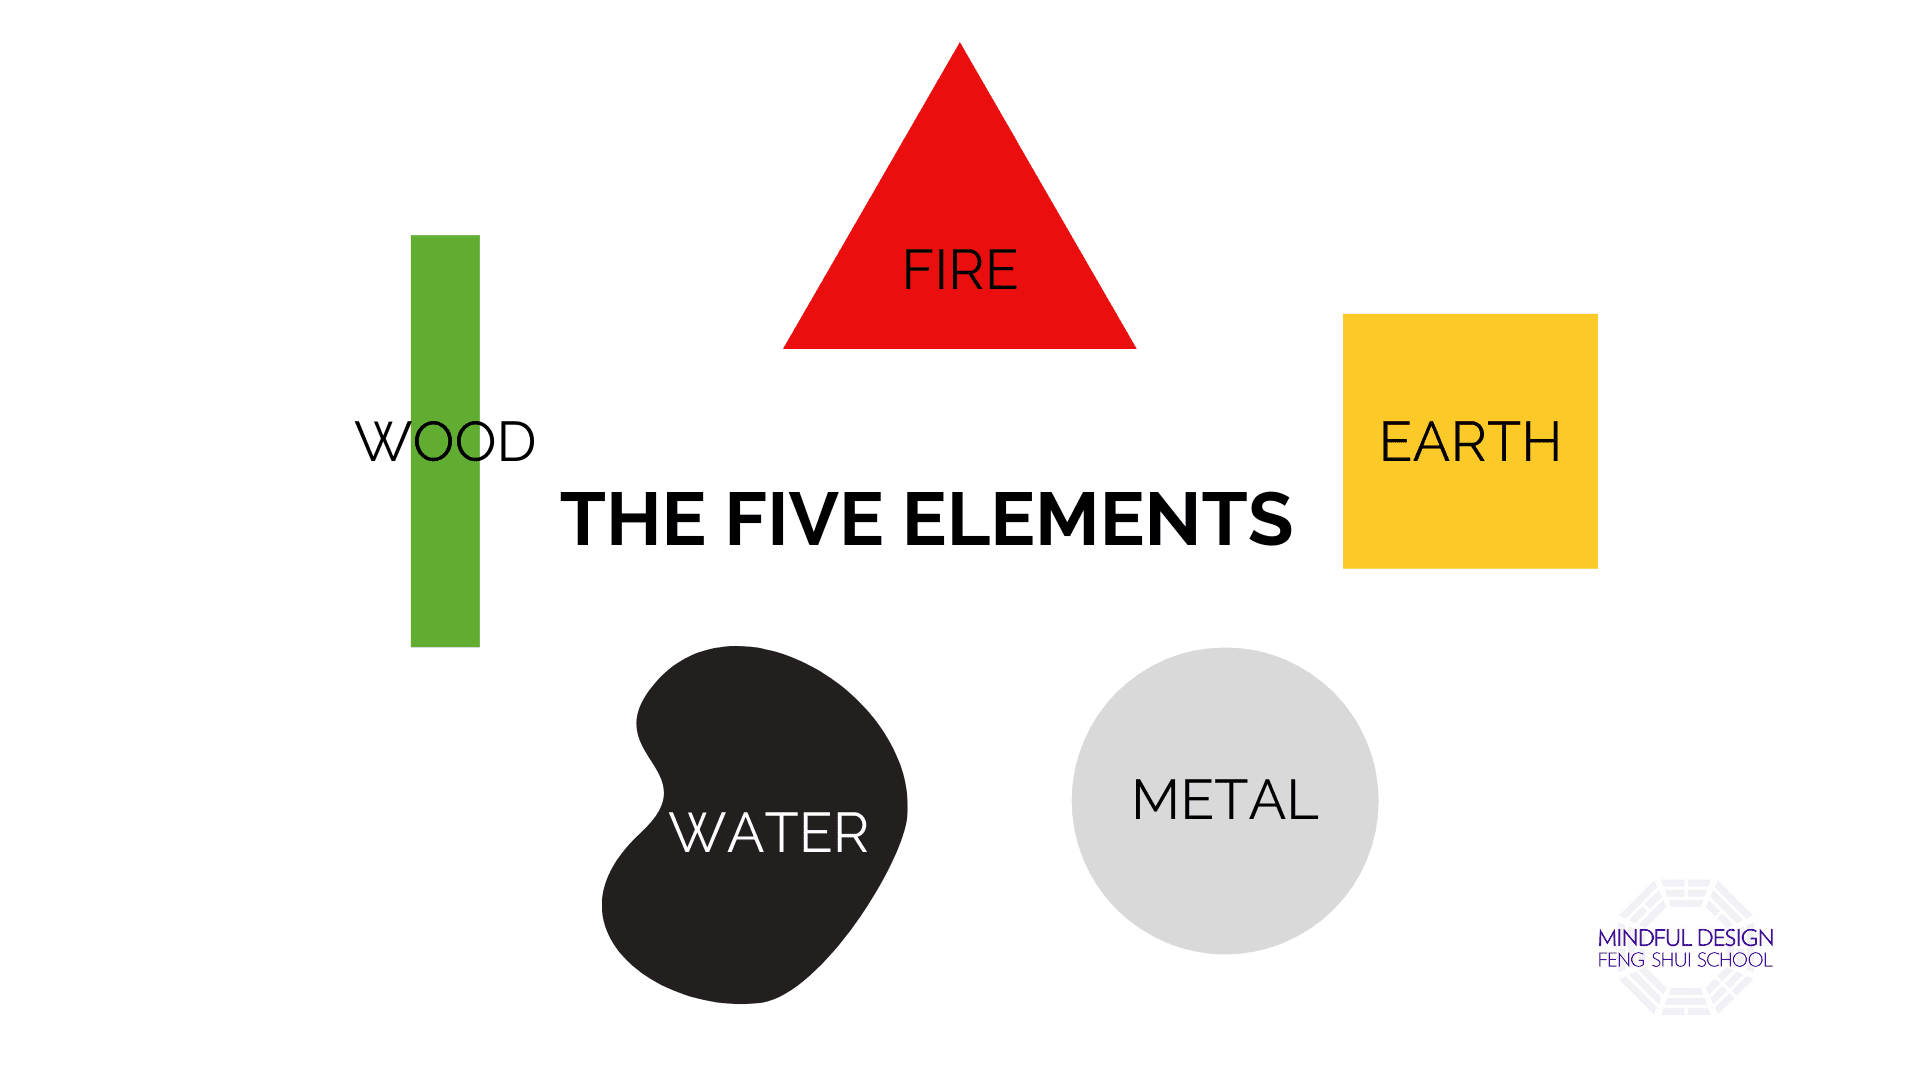 the five elements of earth, metal, water, wood and fire